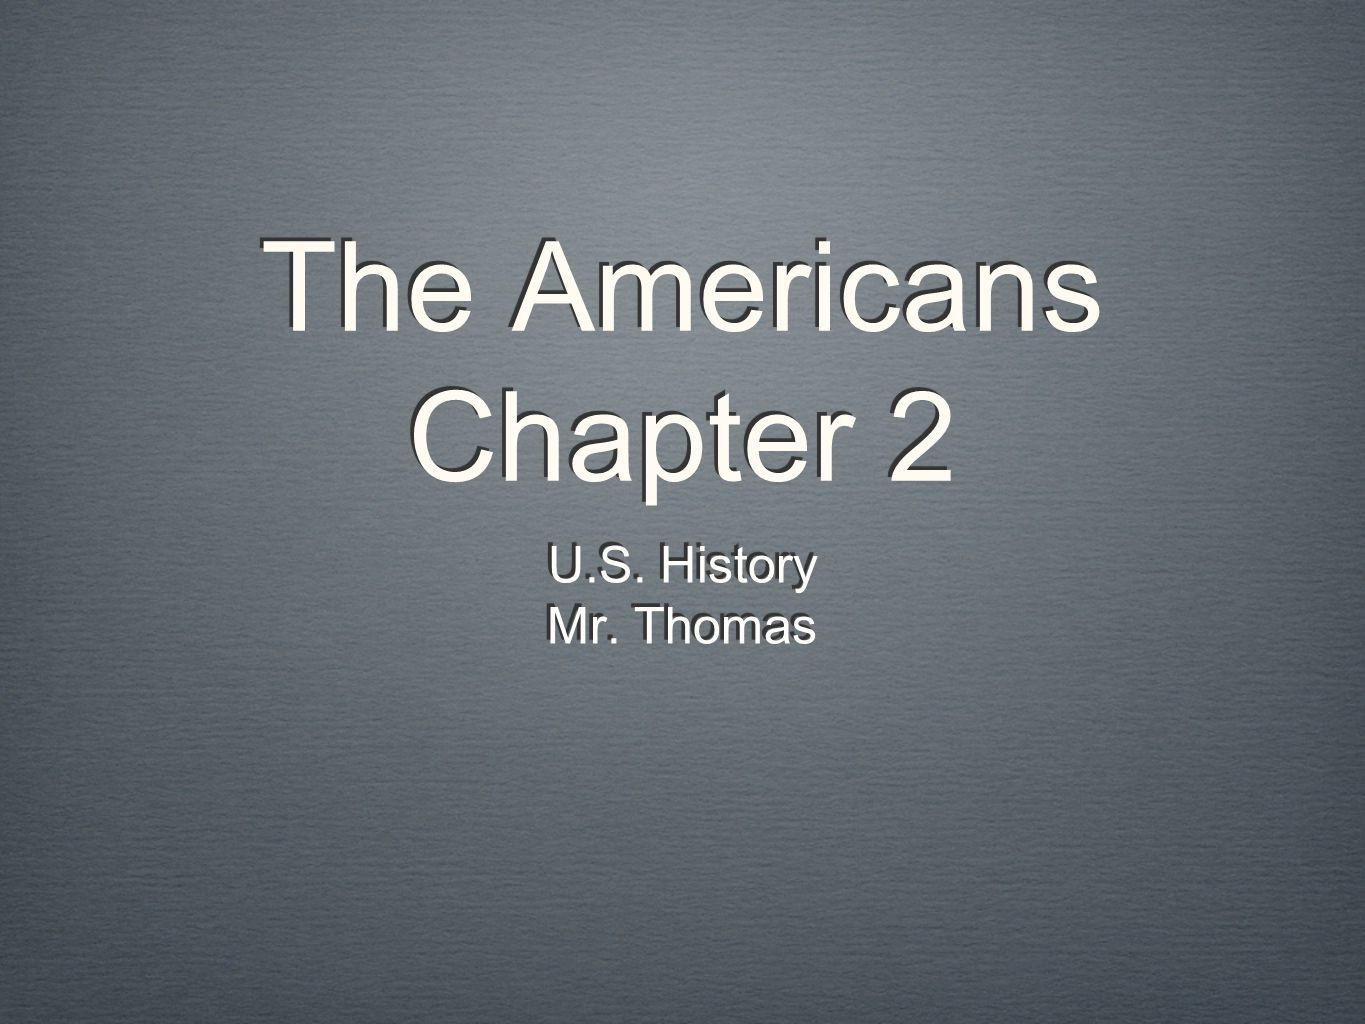 The Americans Chapter 2 U.S. History Mr. Thomas